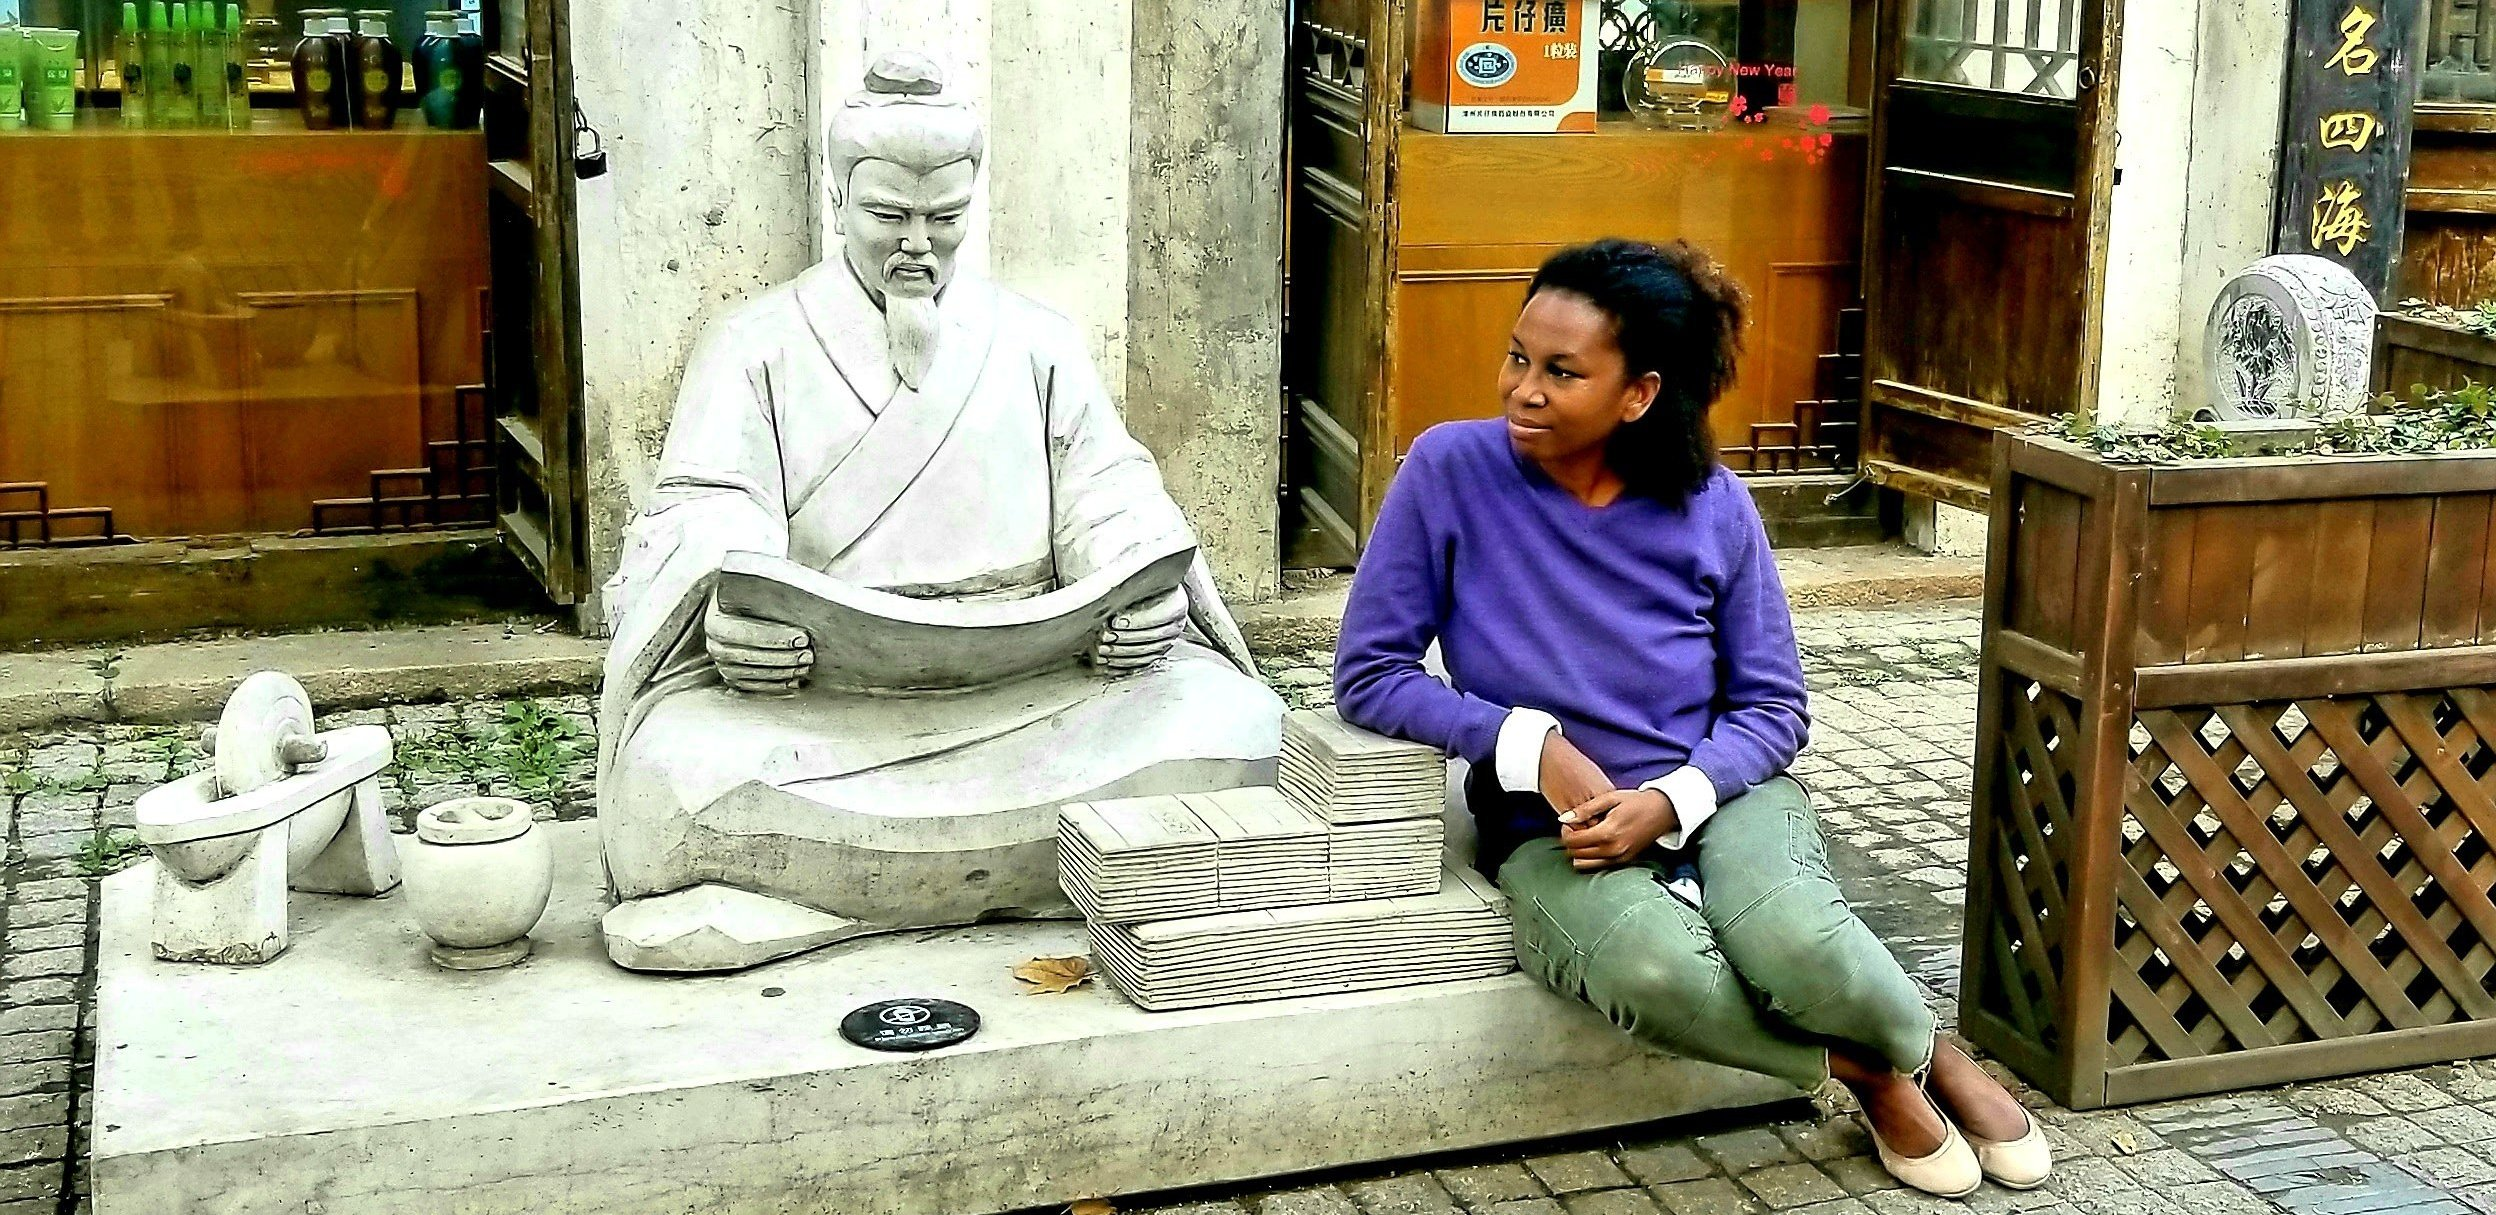 Finding an Expat community in China